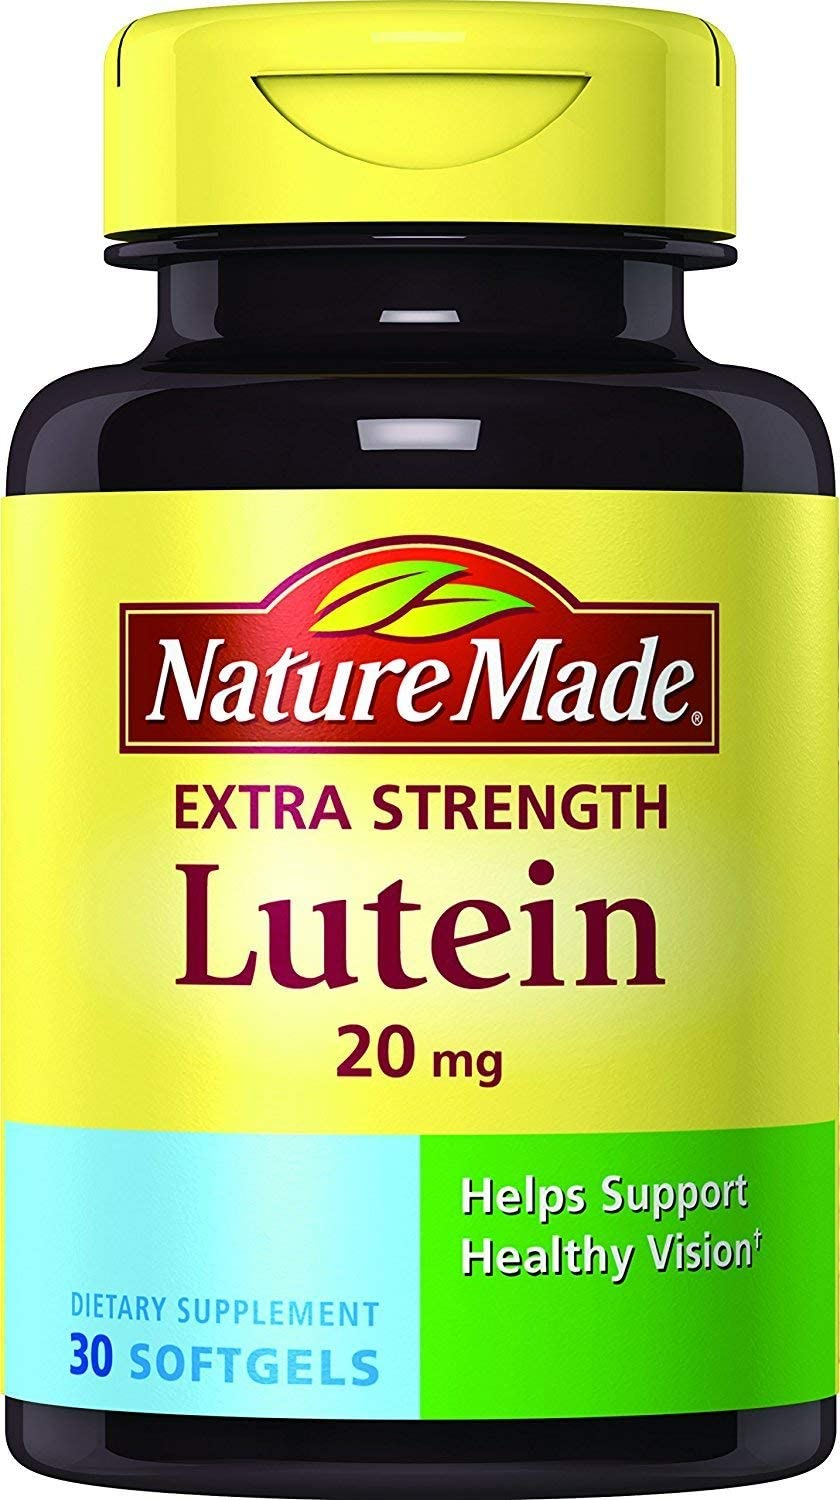 Nature Made Extra Strength Lutein 20 mg Softgels, 30 Count (Pack of 2)